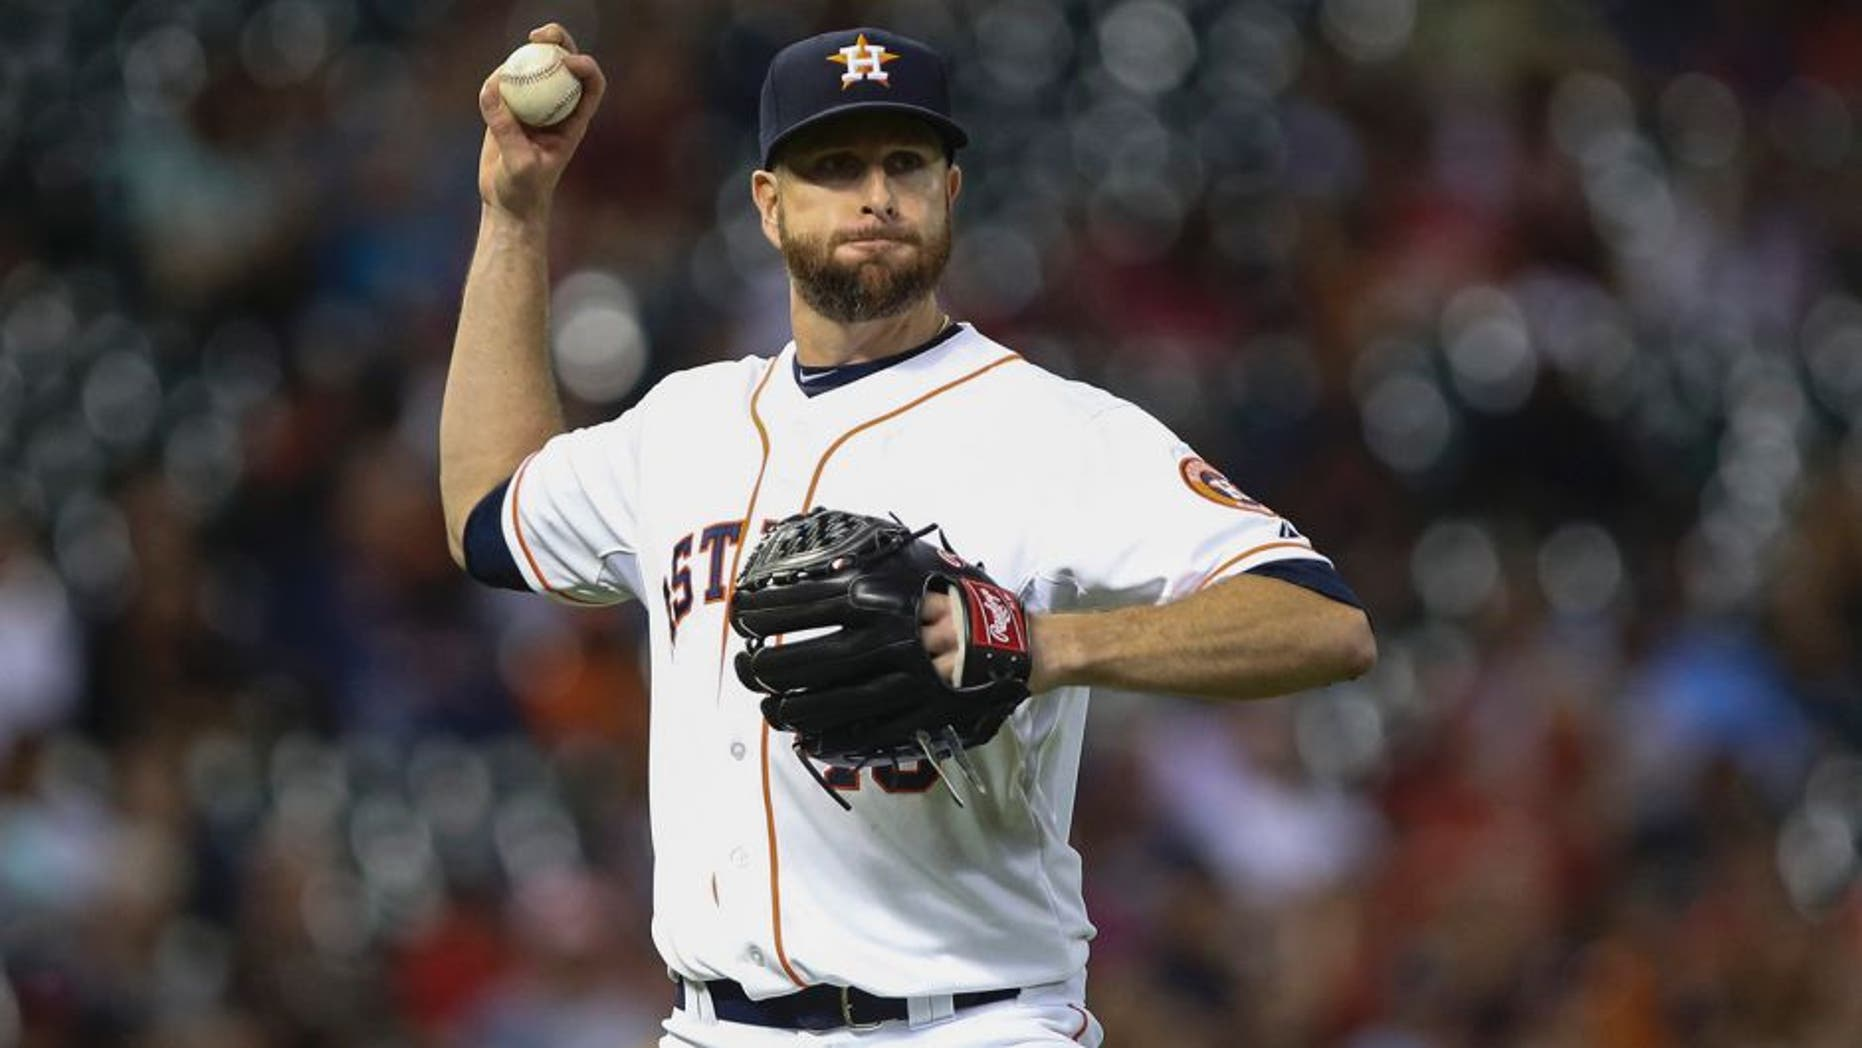 Apr 8, 2015; Houston, TX, USA; Houston Astros starting pitcher Scott Feldman (46) throws out a runner at first base during the fifth inning against the Cleveland Indians at Minute Maid Park. Mandatory Credit: Troy Taormina-USA TODAY Sports